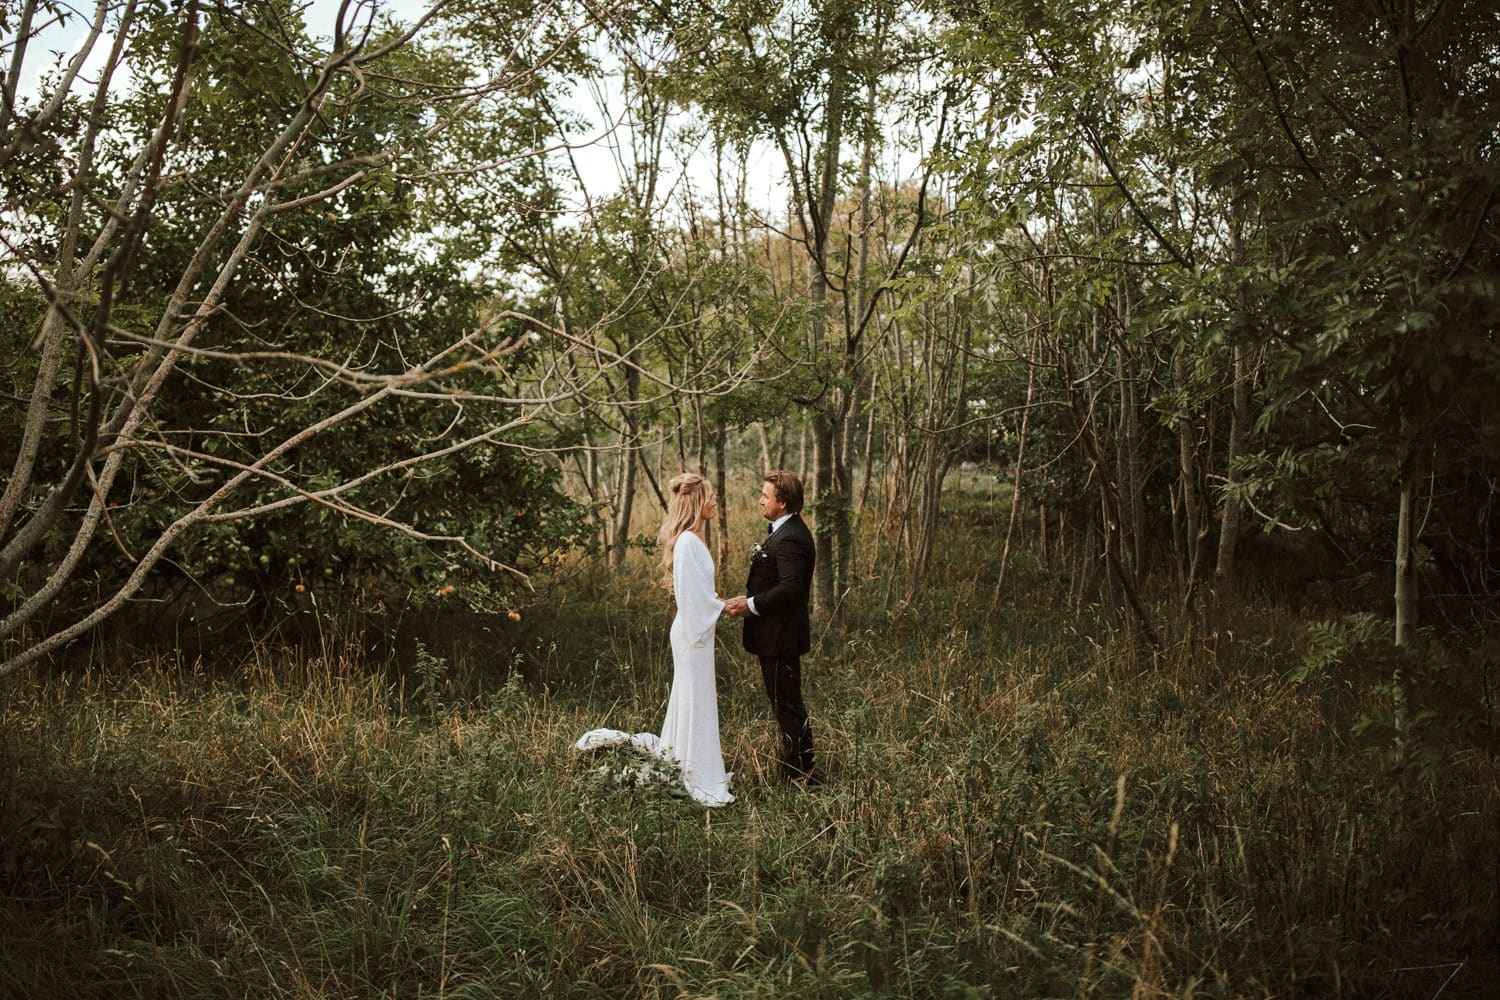 The wedding couple is walking through the meadow and is holding hands.